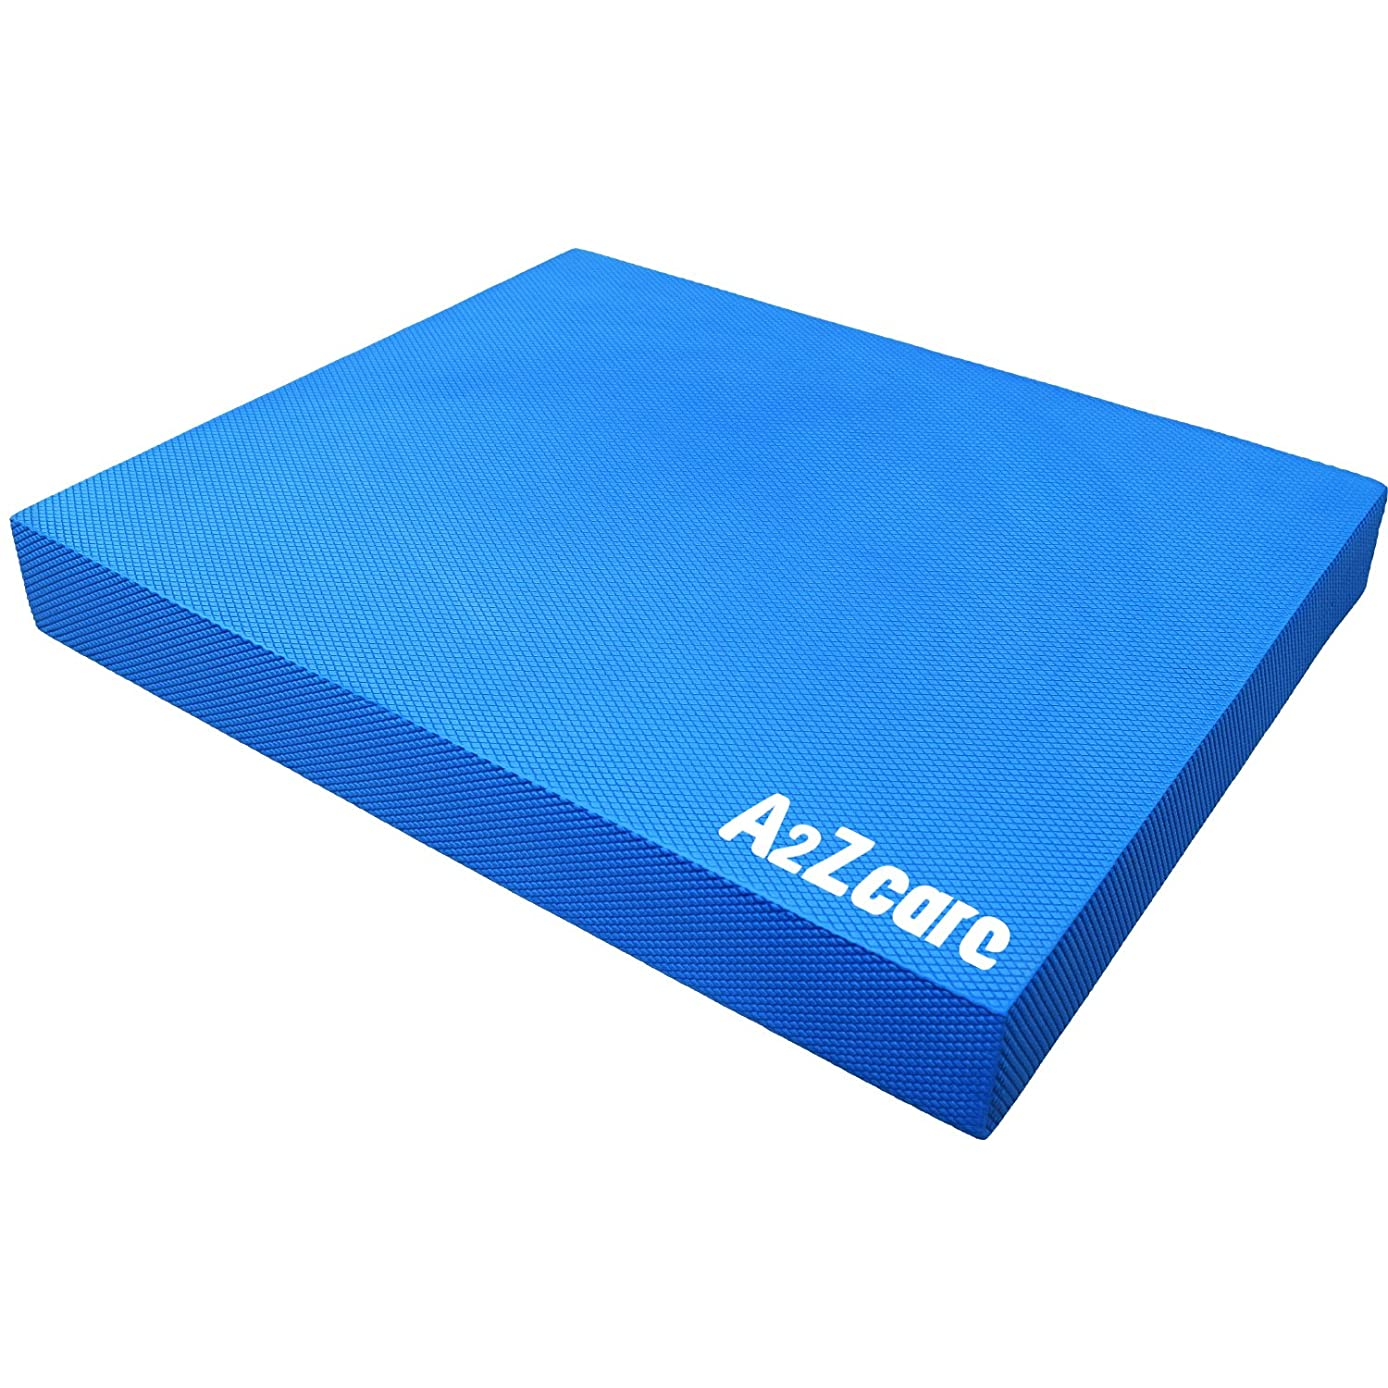 A2ZCARE Premium Quality Balance Pad - Super Soft Pad Provides A Non-Slip Textured Surface (Guideline Included)